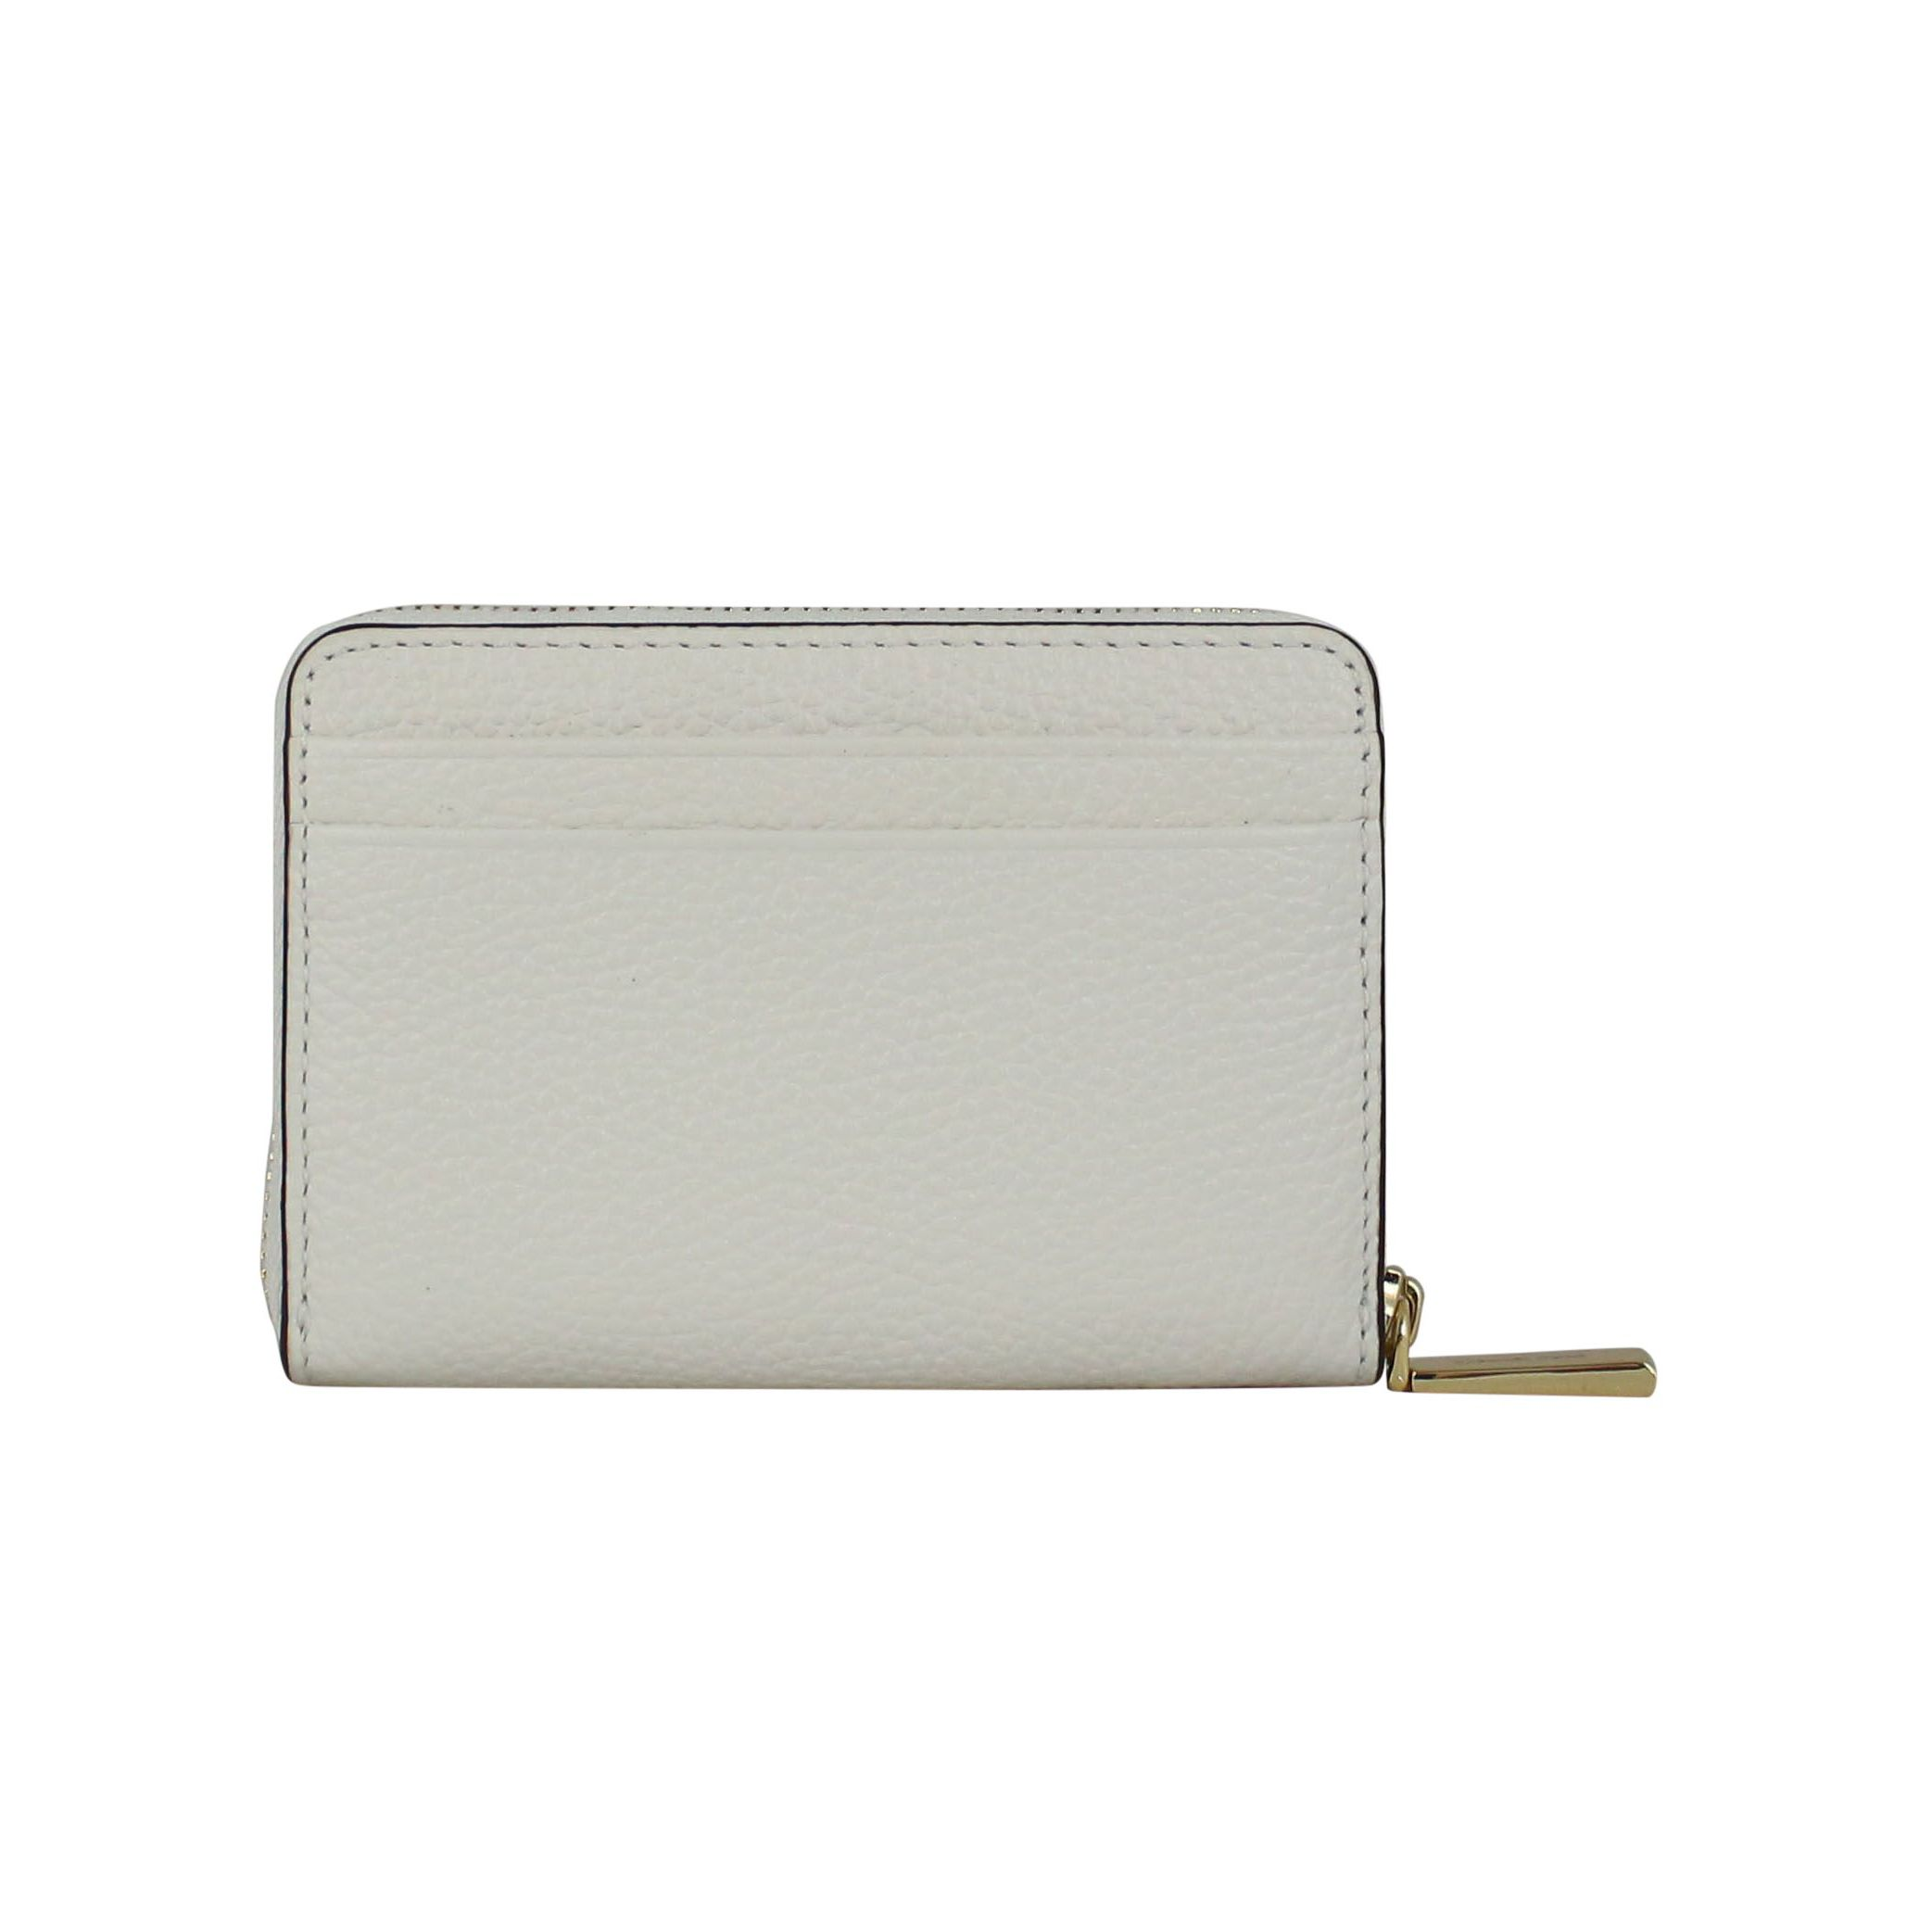 50a634a289a548 Document holder with logo Optical white, Michael Kors 32t8gf6z1l ...